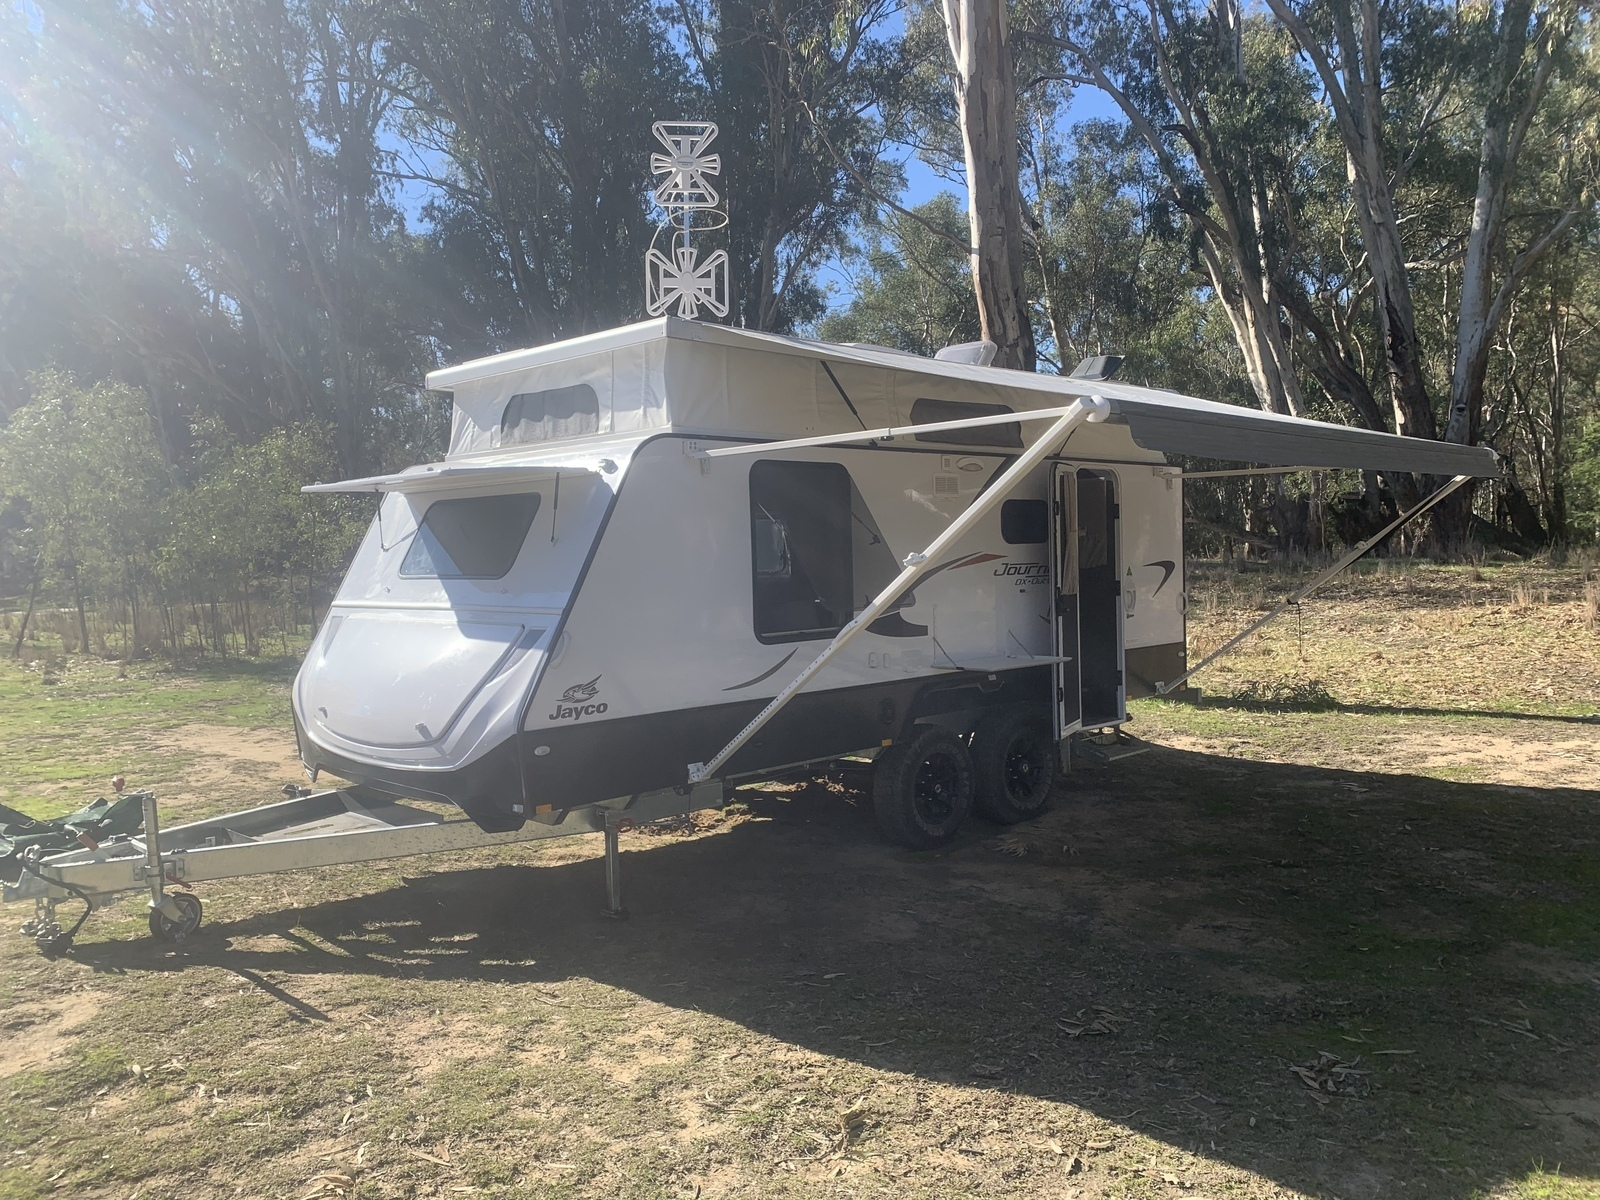 2018 Jayco Journey Deluxe Outback Full Ensuite - Cover Image